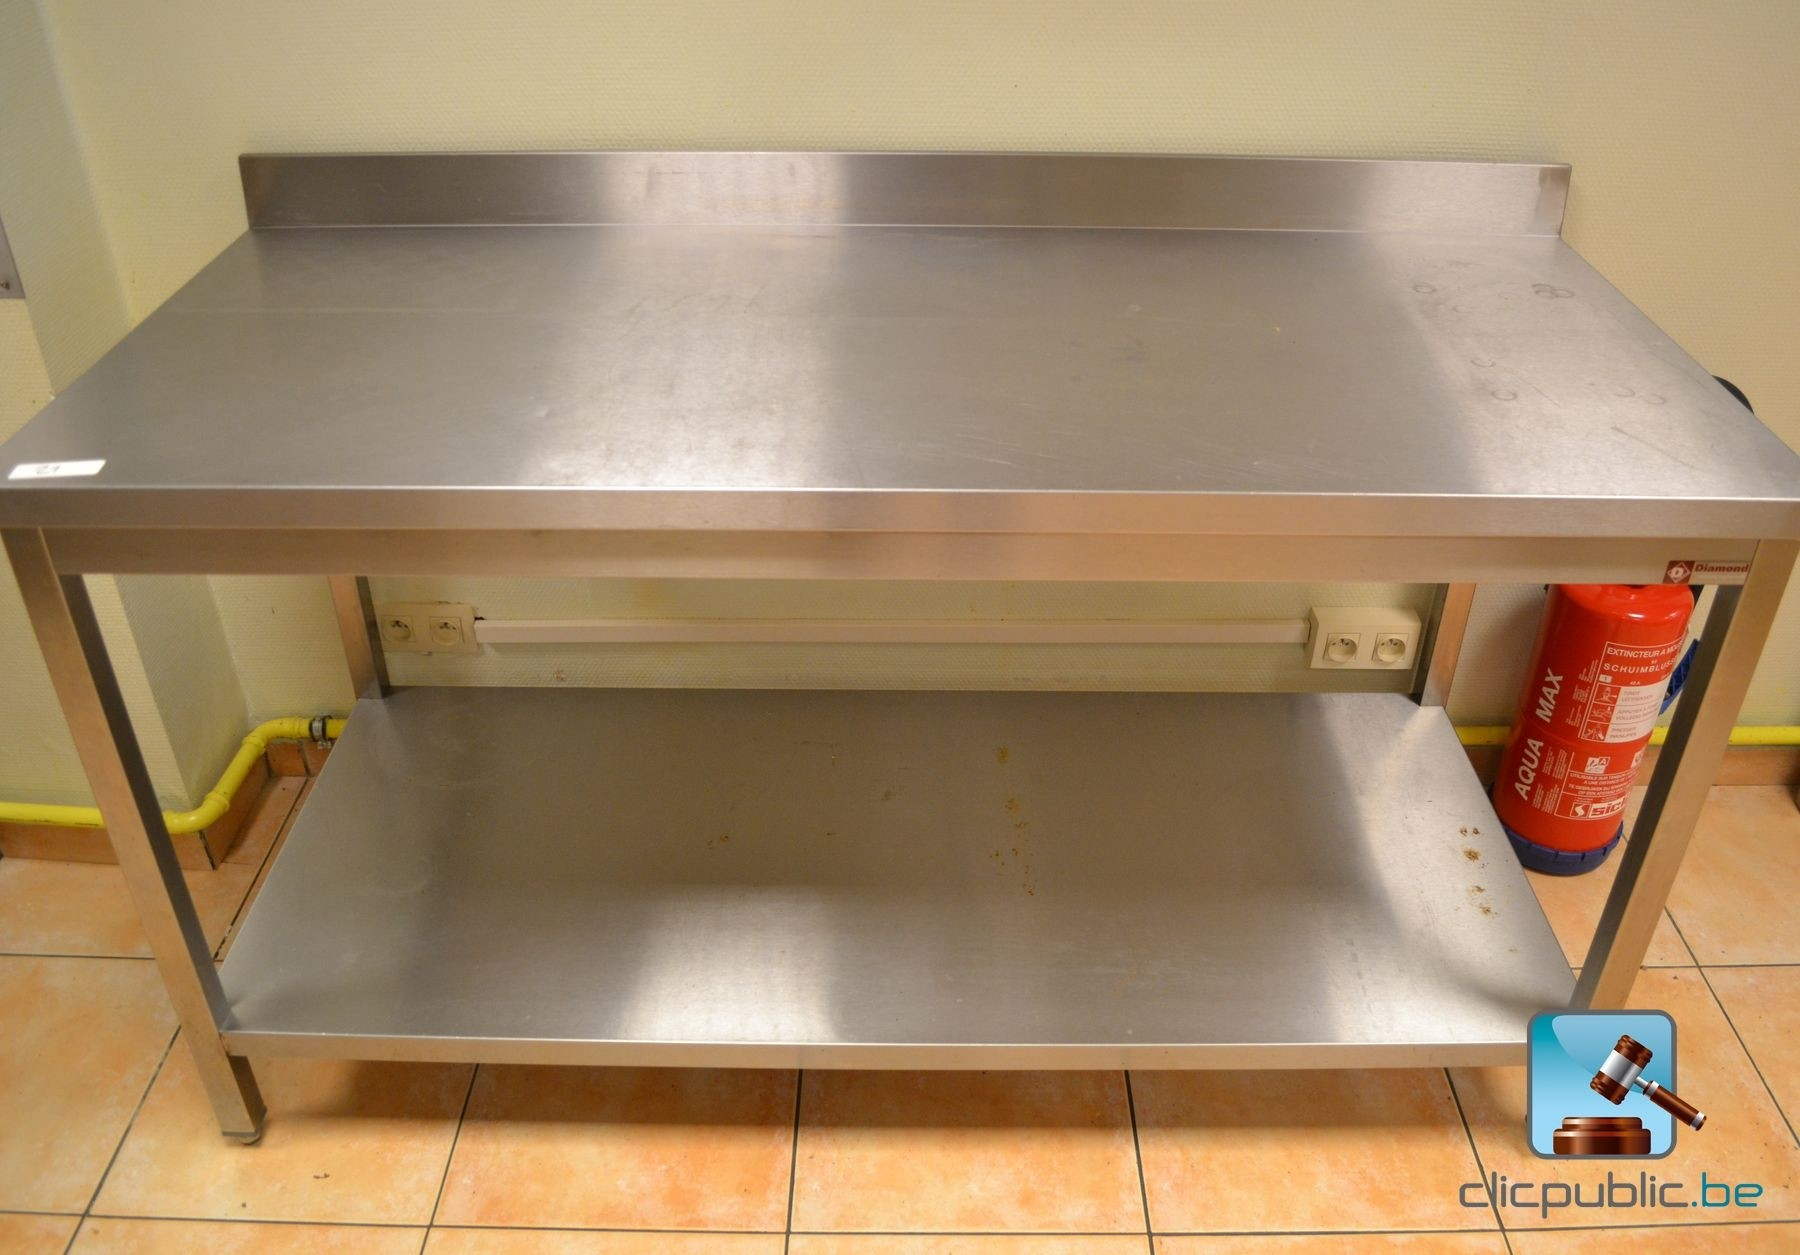 Table de cuisine professionnelle en inox diamond ref 21 for Table cuisine professionnelle inox